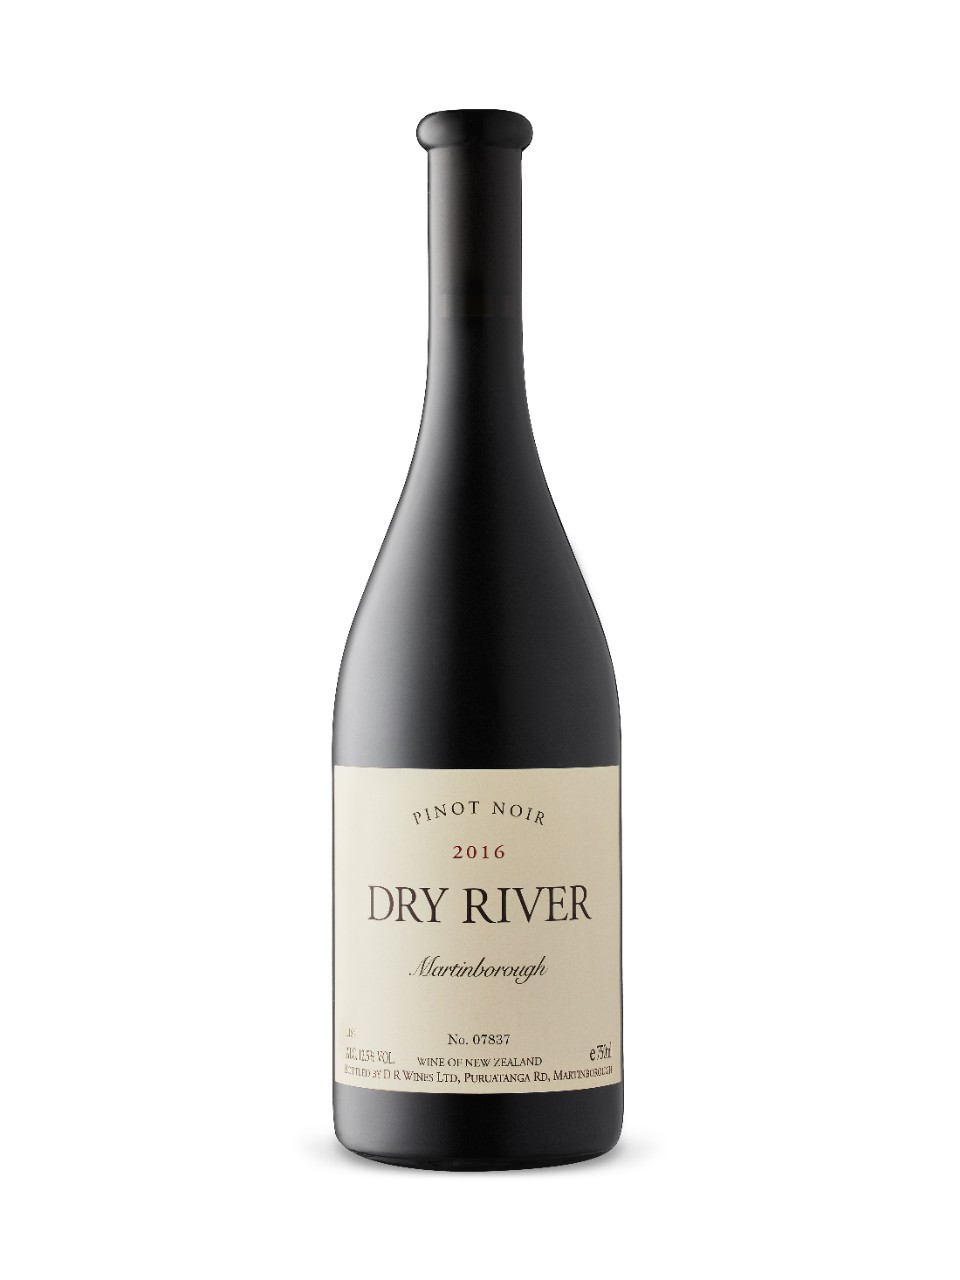 Dry River Pinot Noir 2016 from LCBO